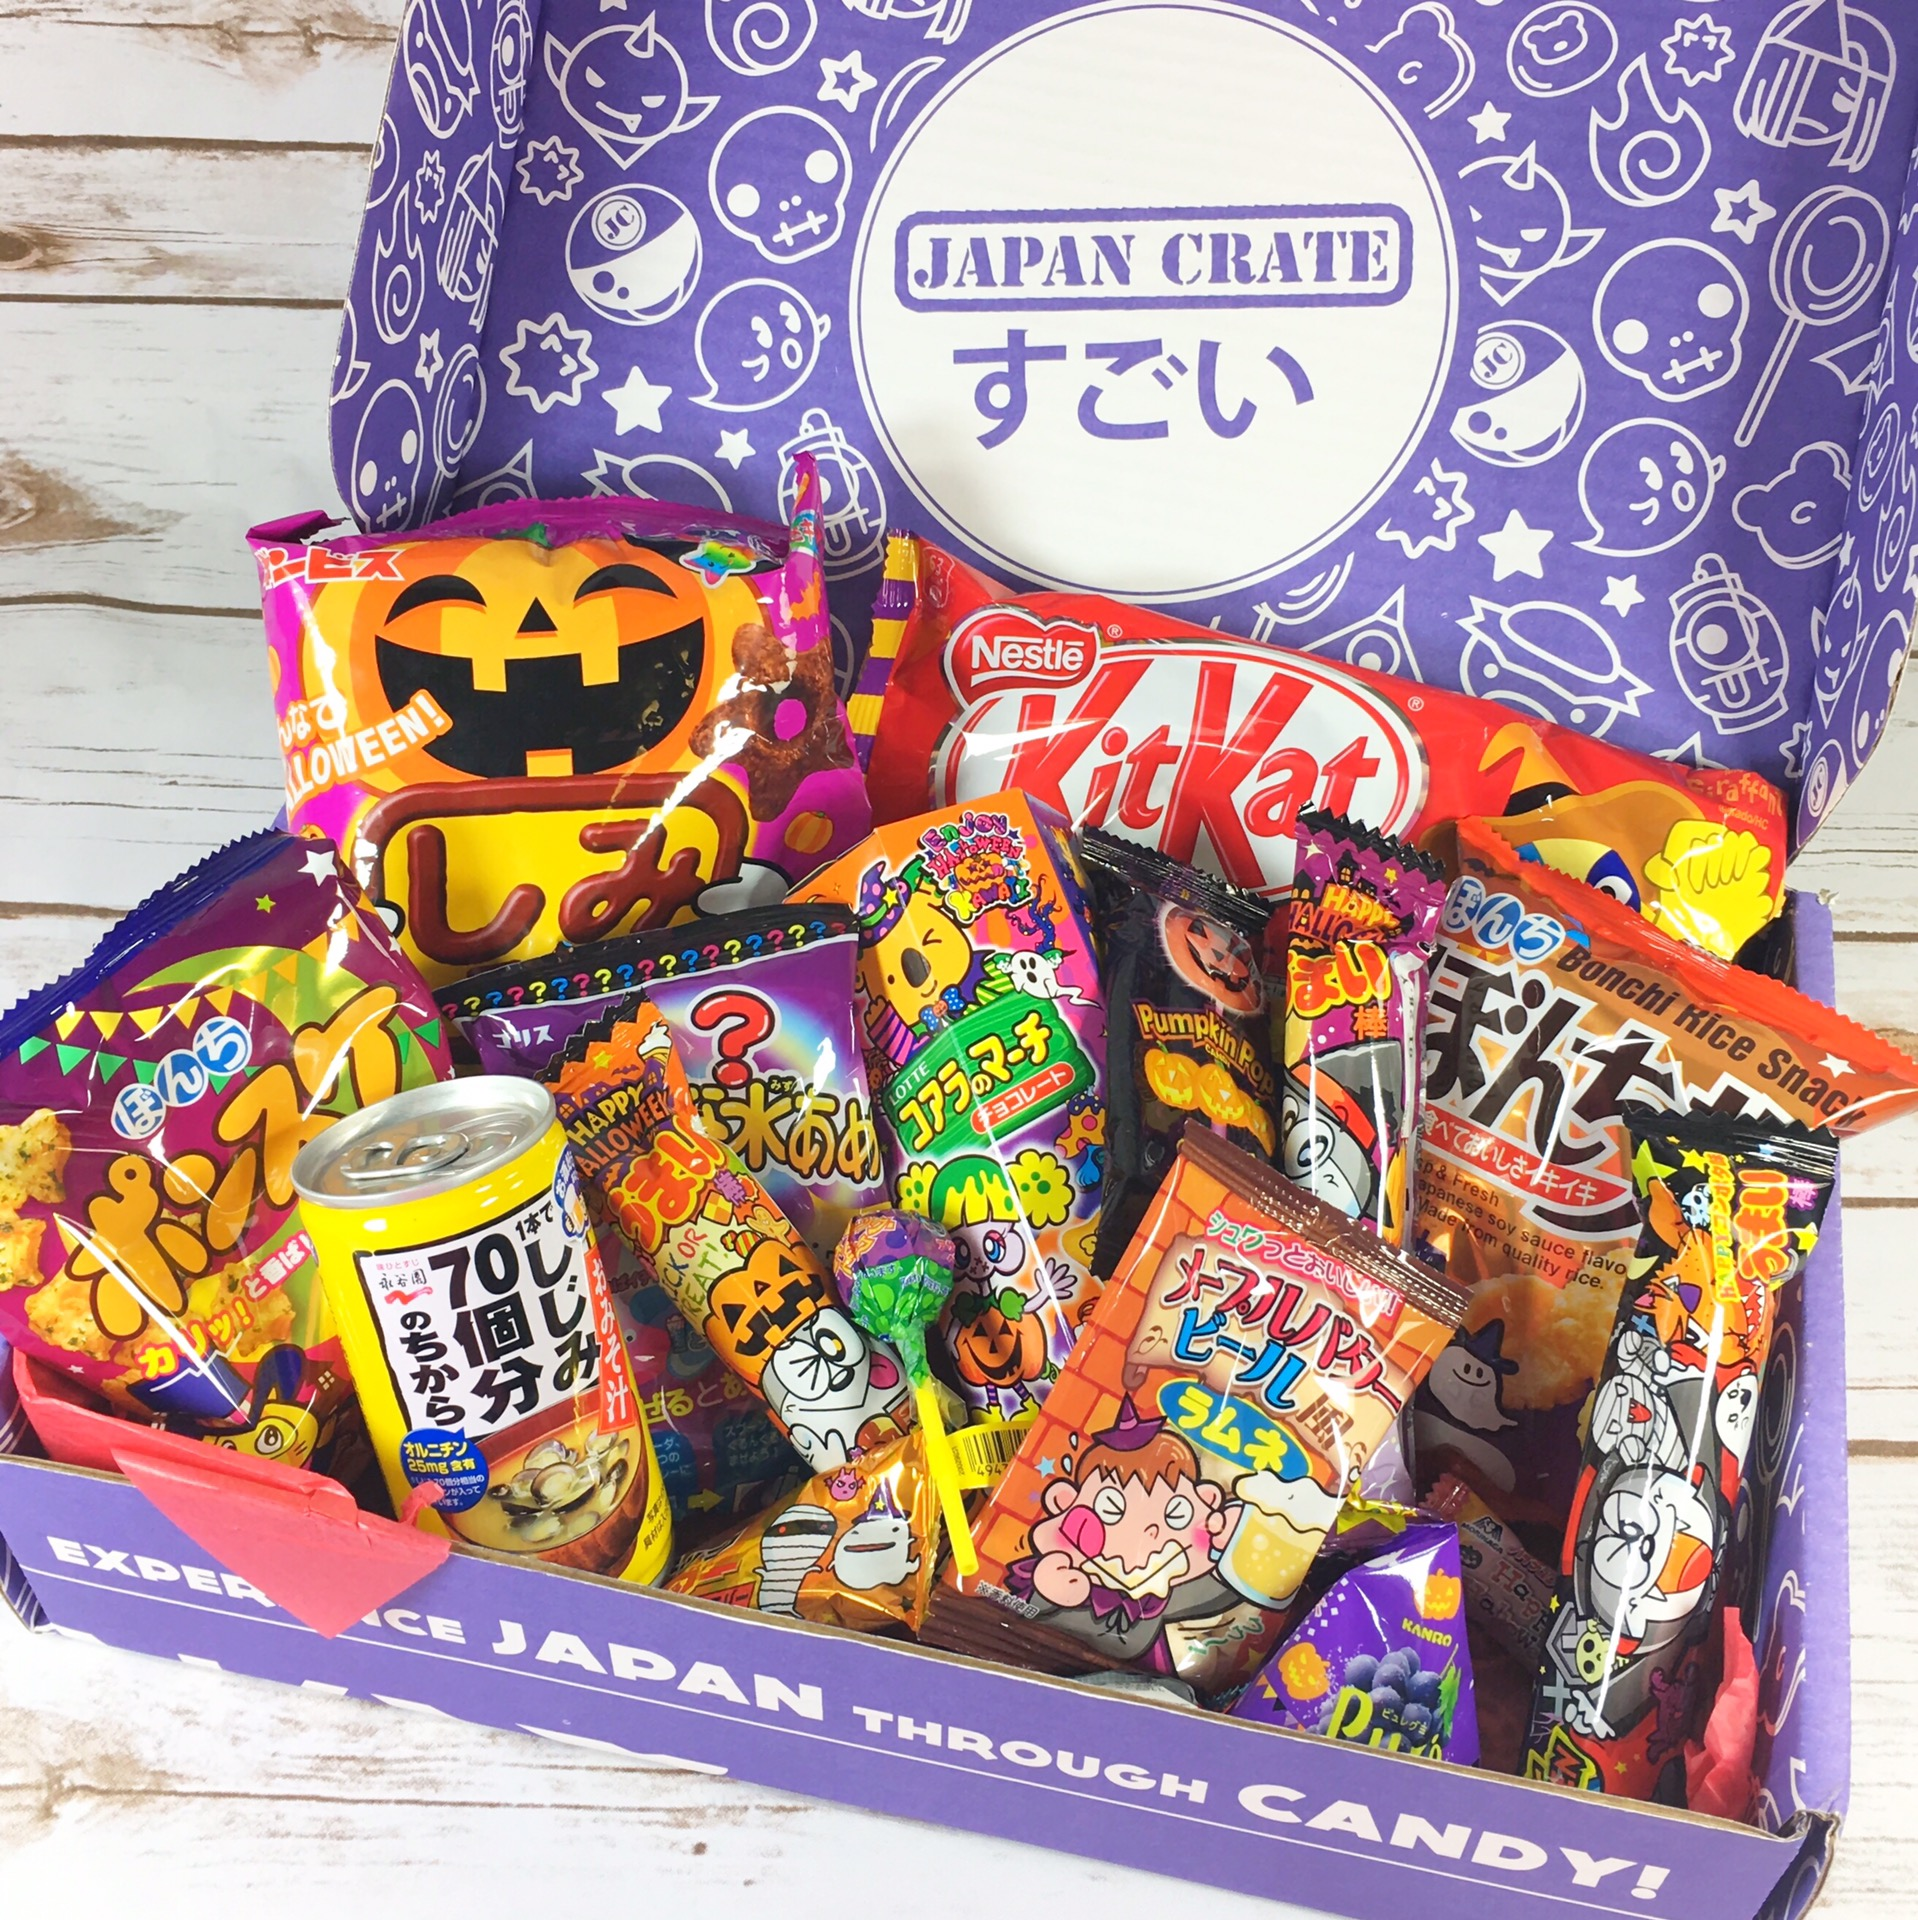 Japan Crate October 2017 Subscription Box Review + Coupon